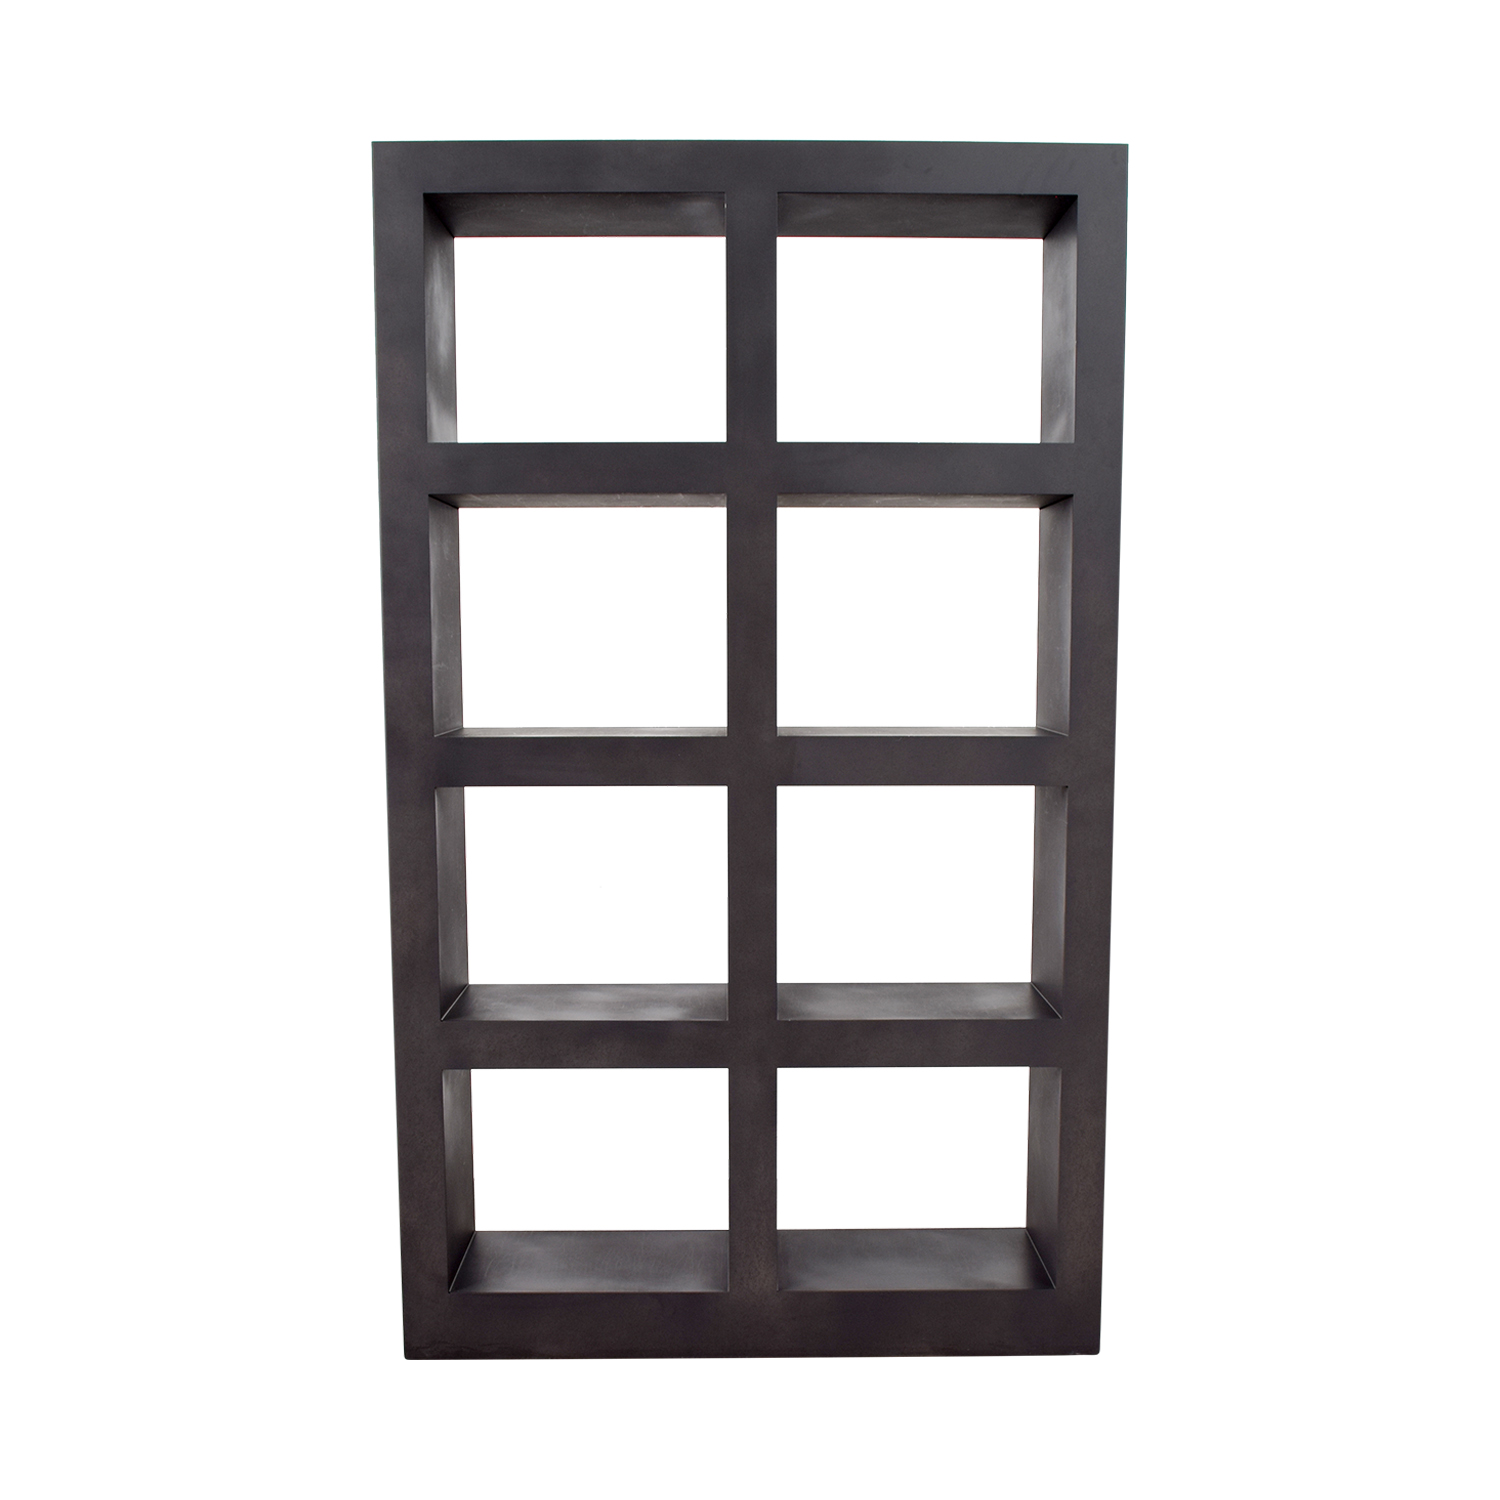 Crate & Barrel Crate & Barrel Shadow Box Bookcase discount